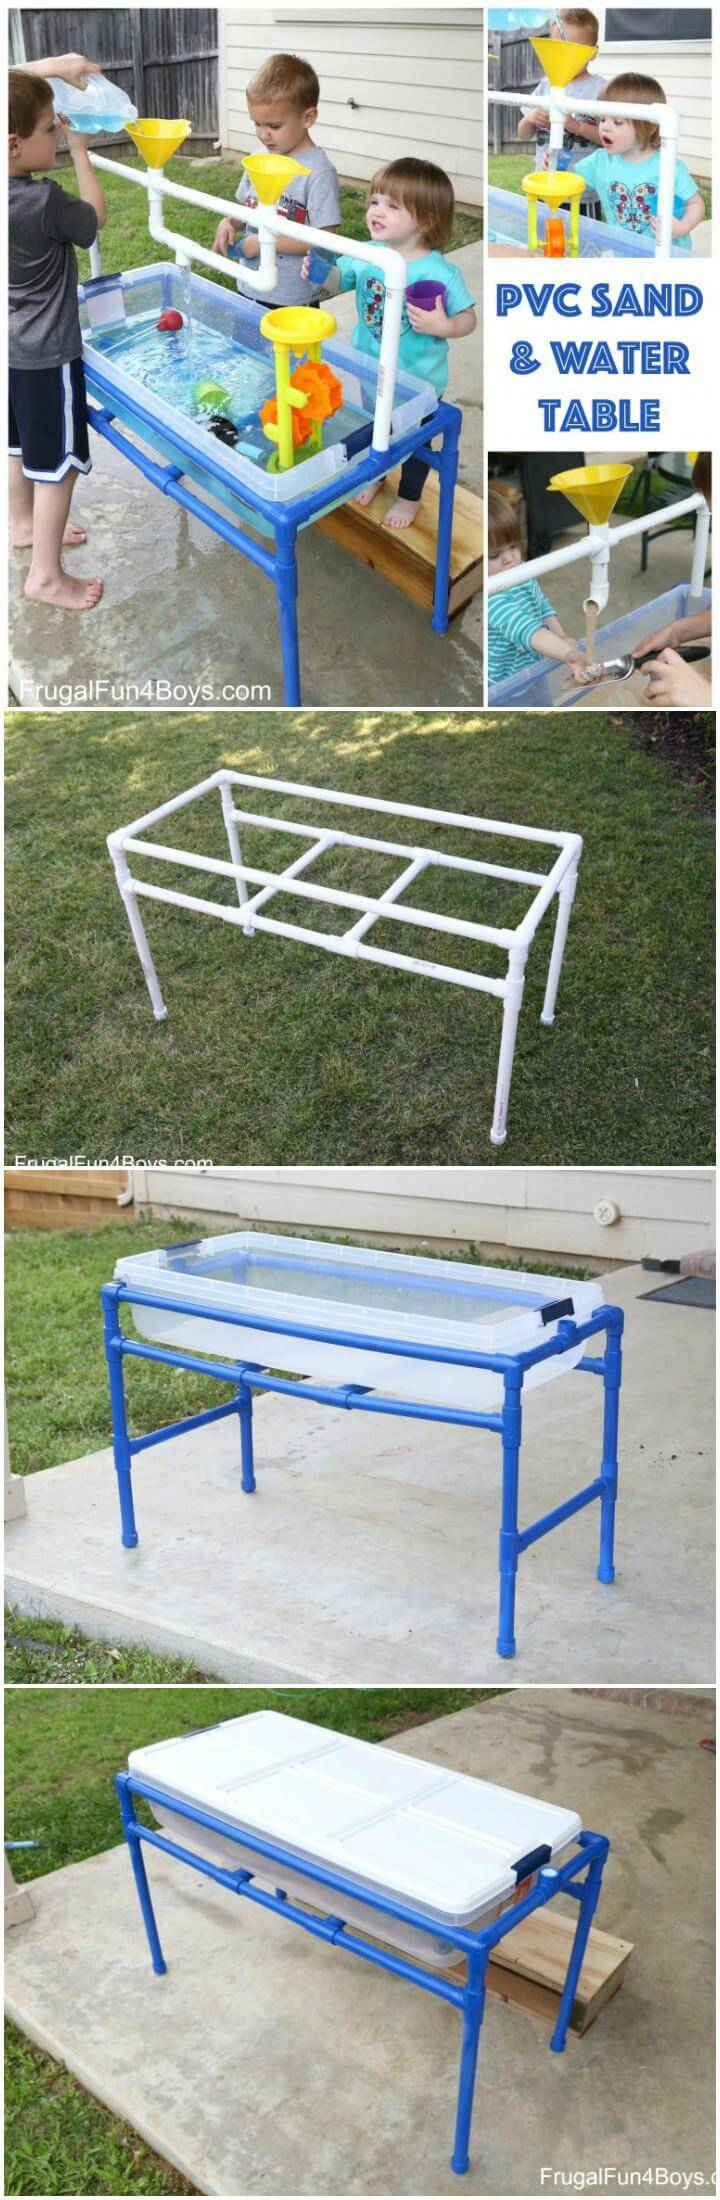 60 diy sandbox ideas and projects for kids page 2 of 10 for Diy sand and water table pvc